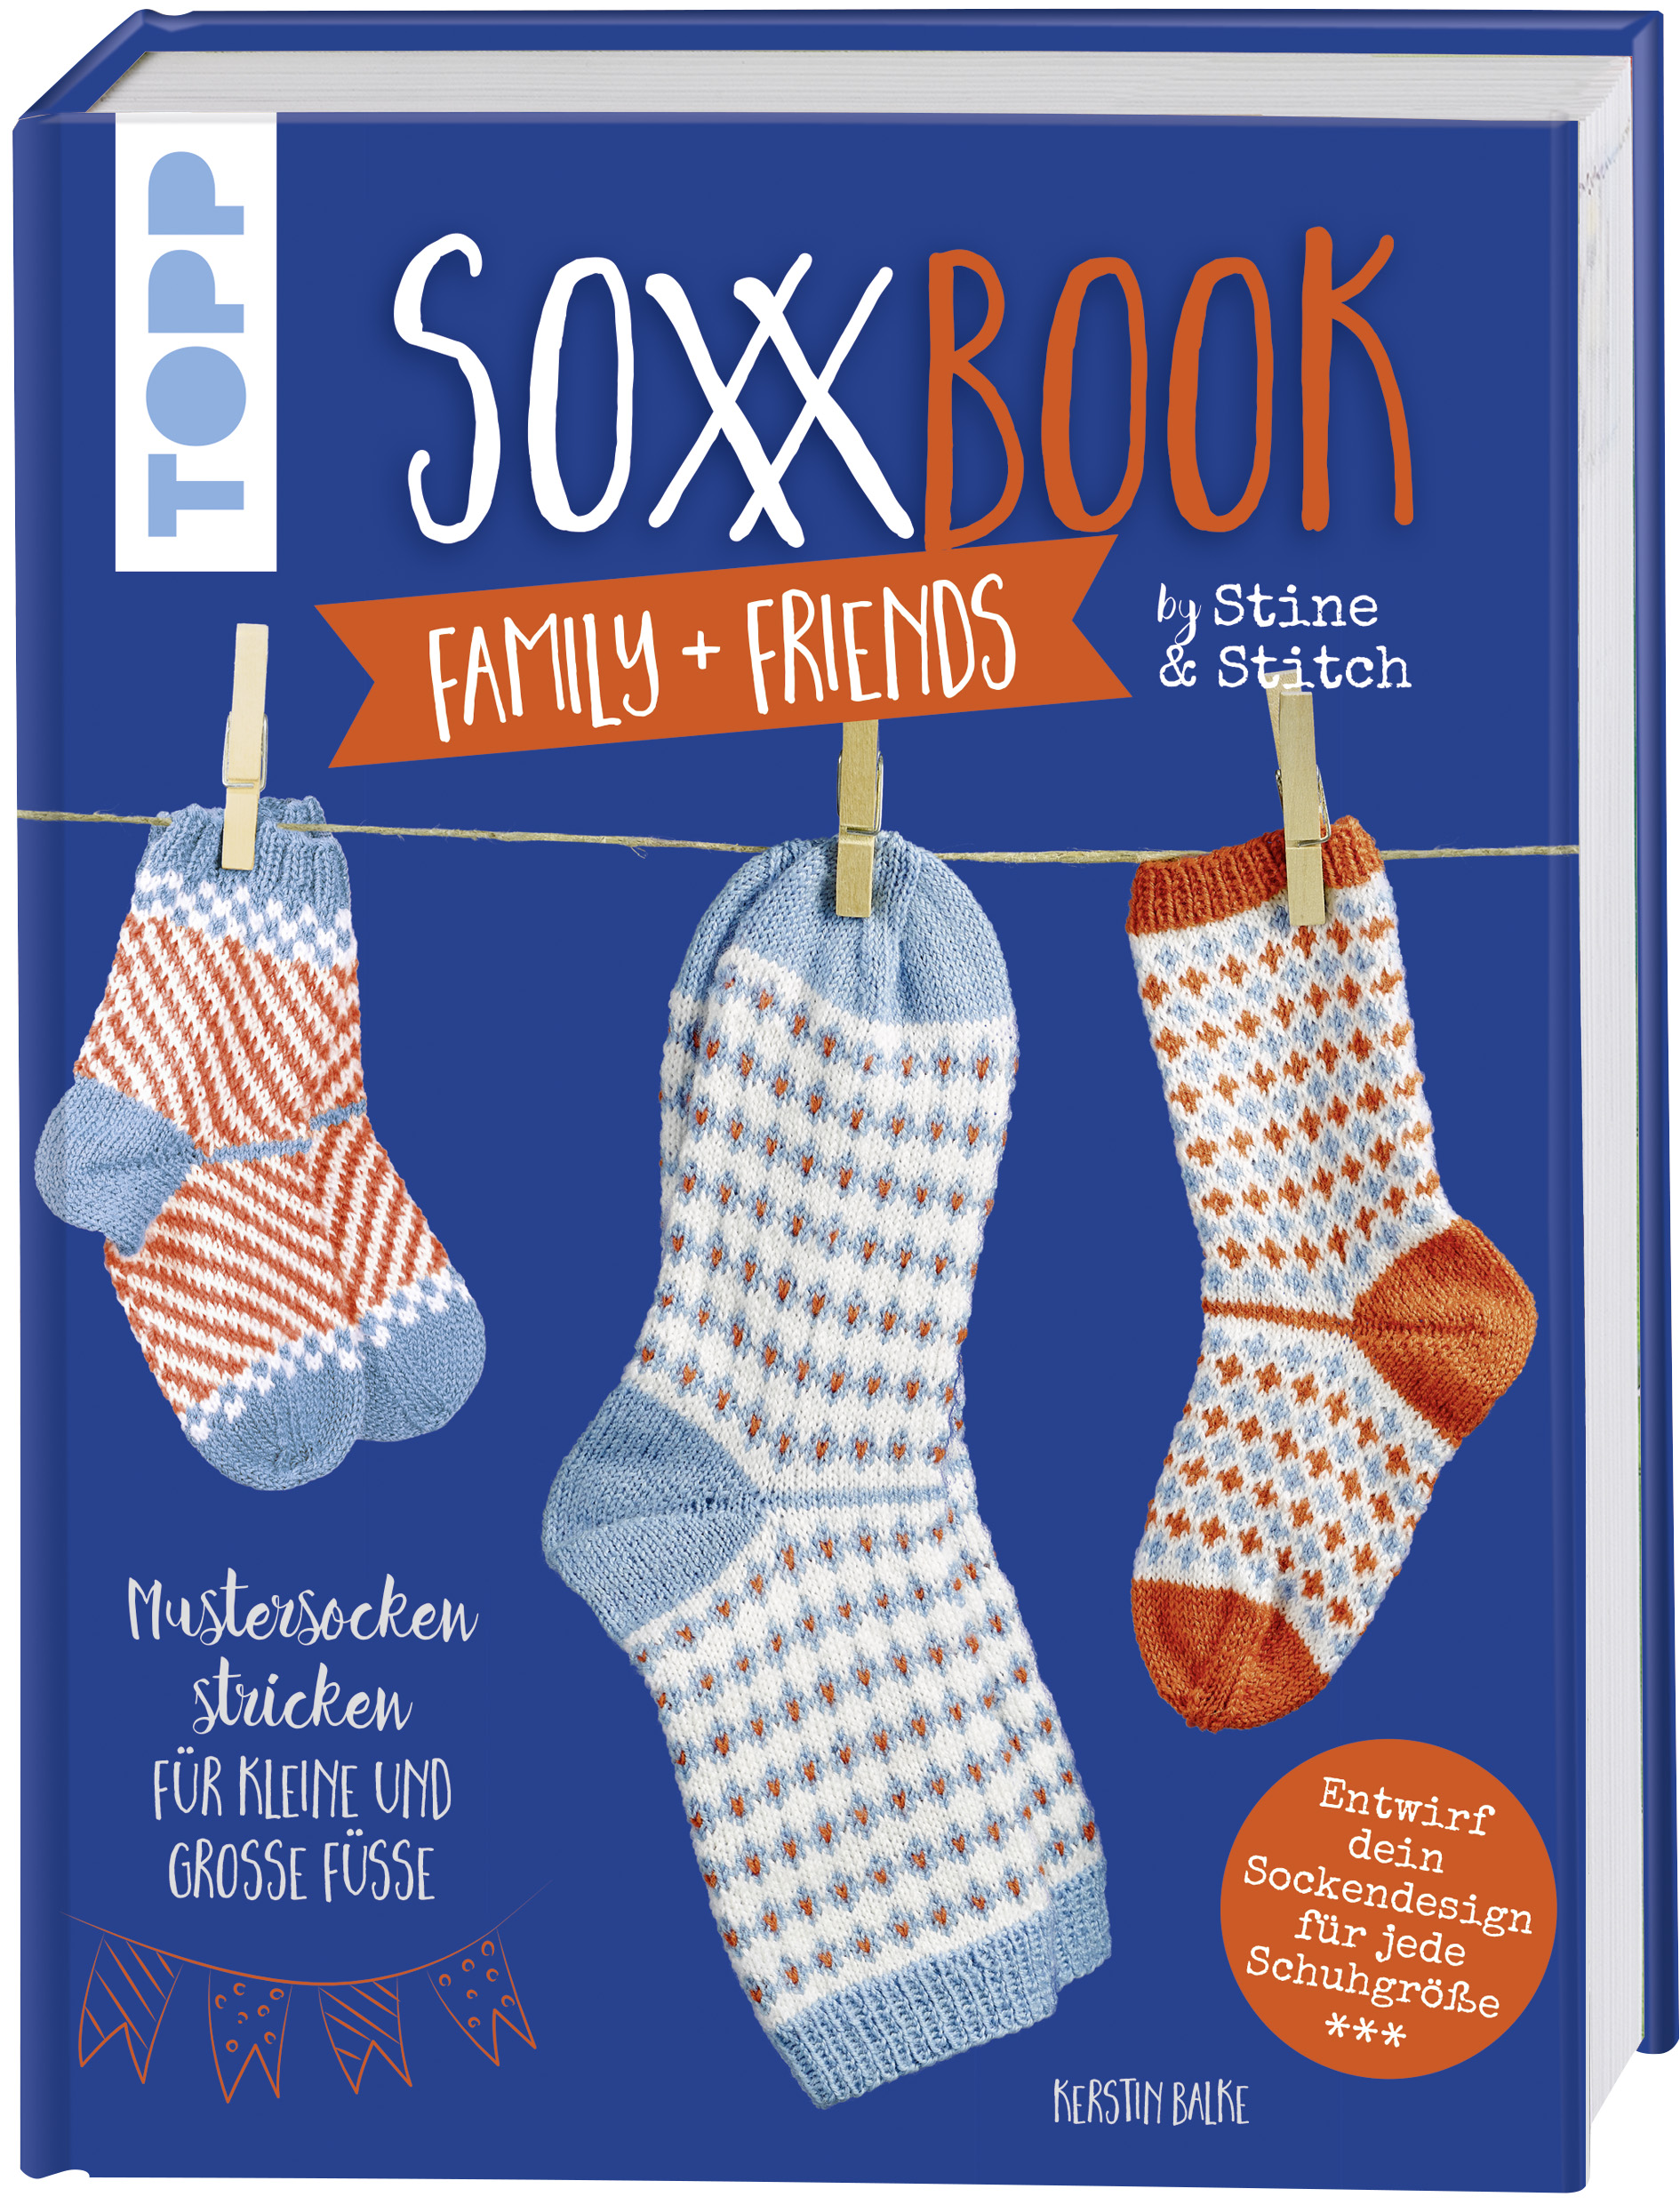 SoxxBook Family & Friends (Kerstin Balke)